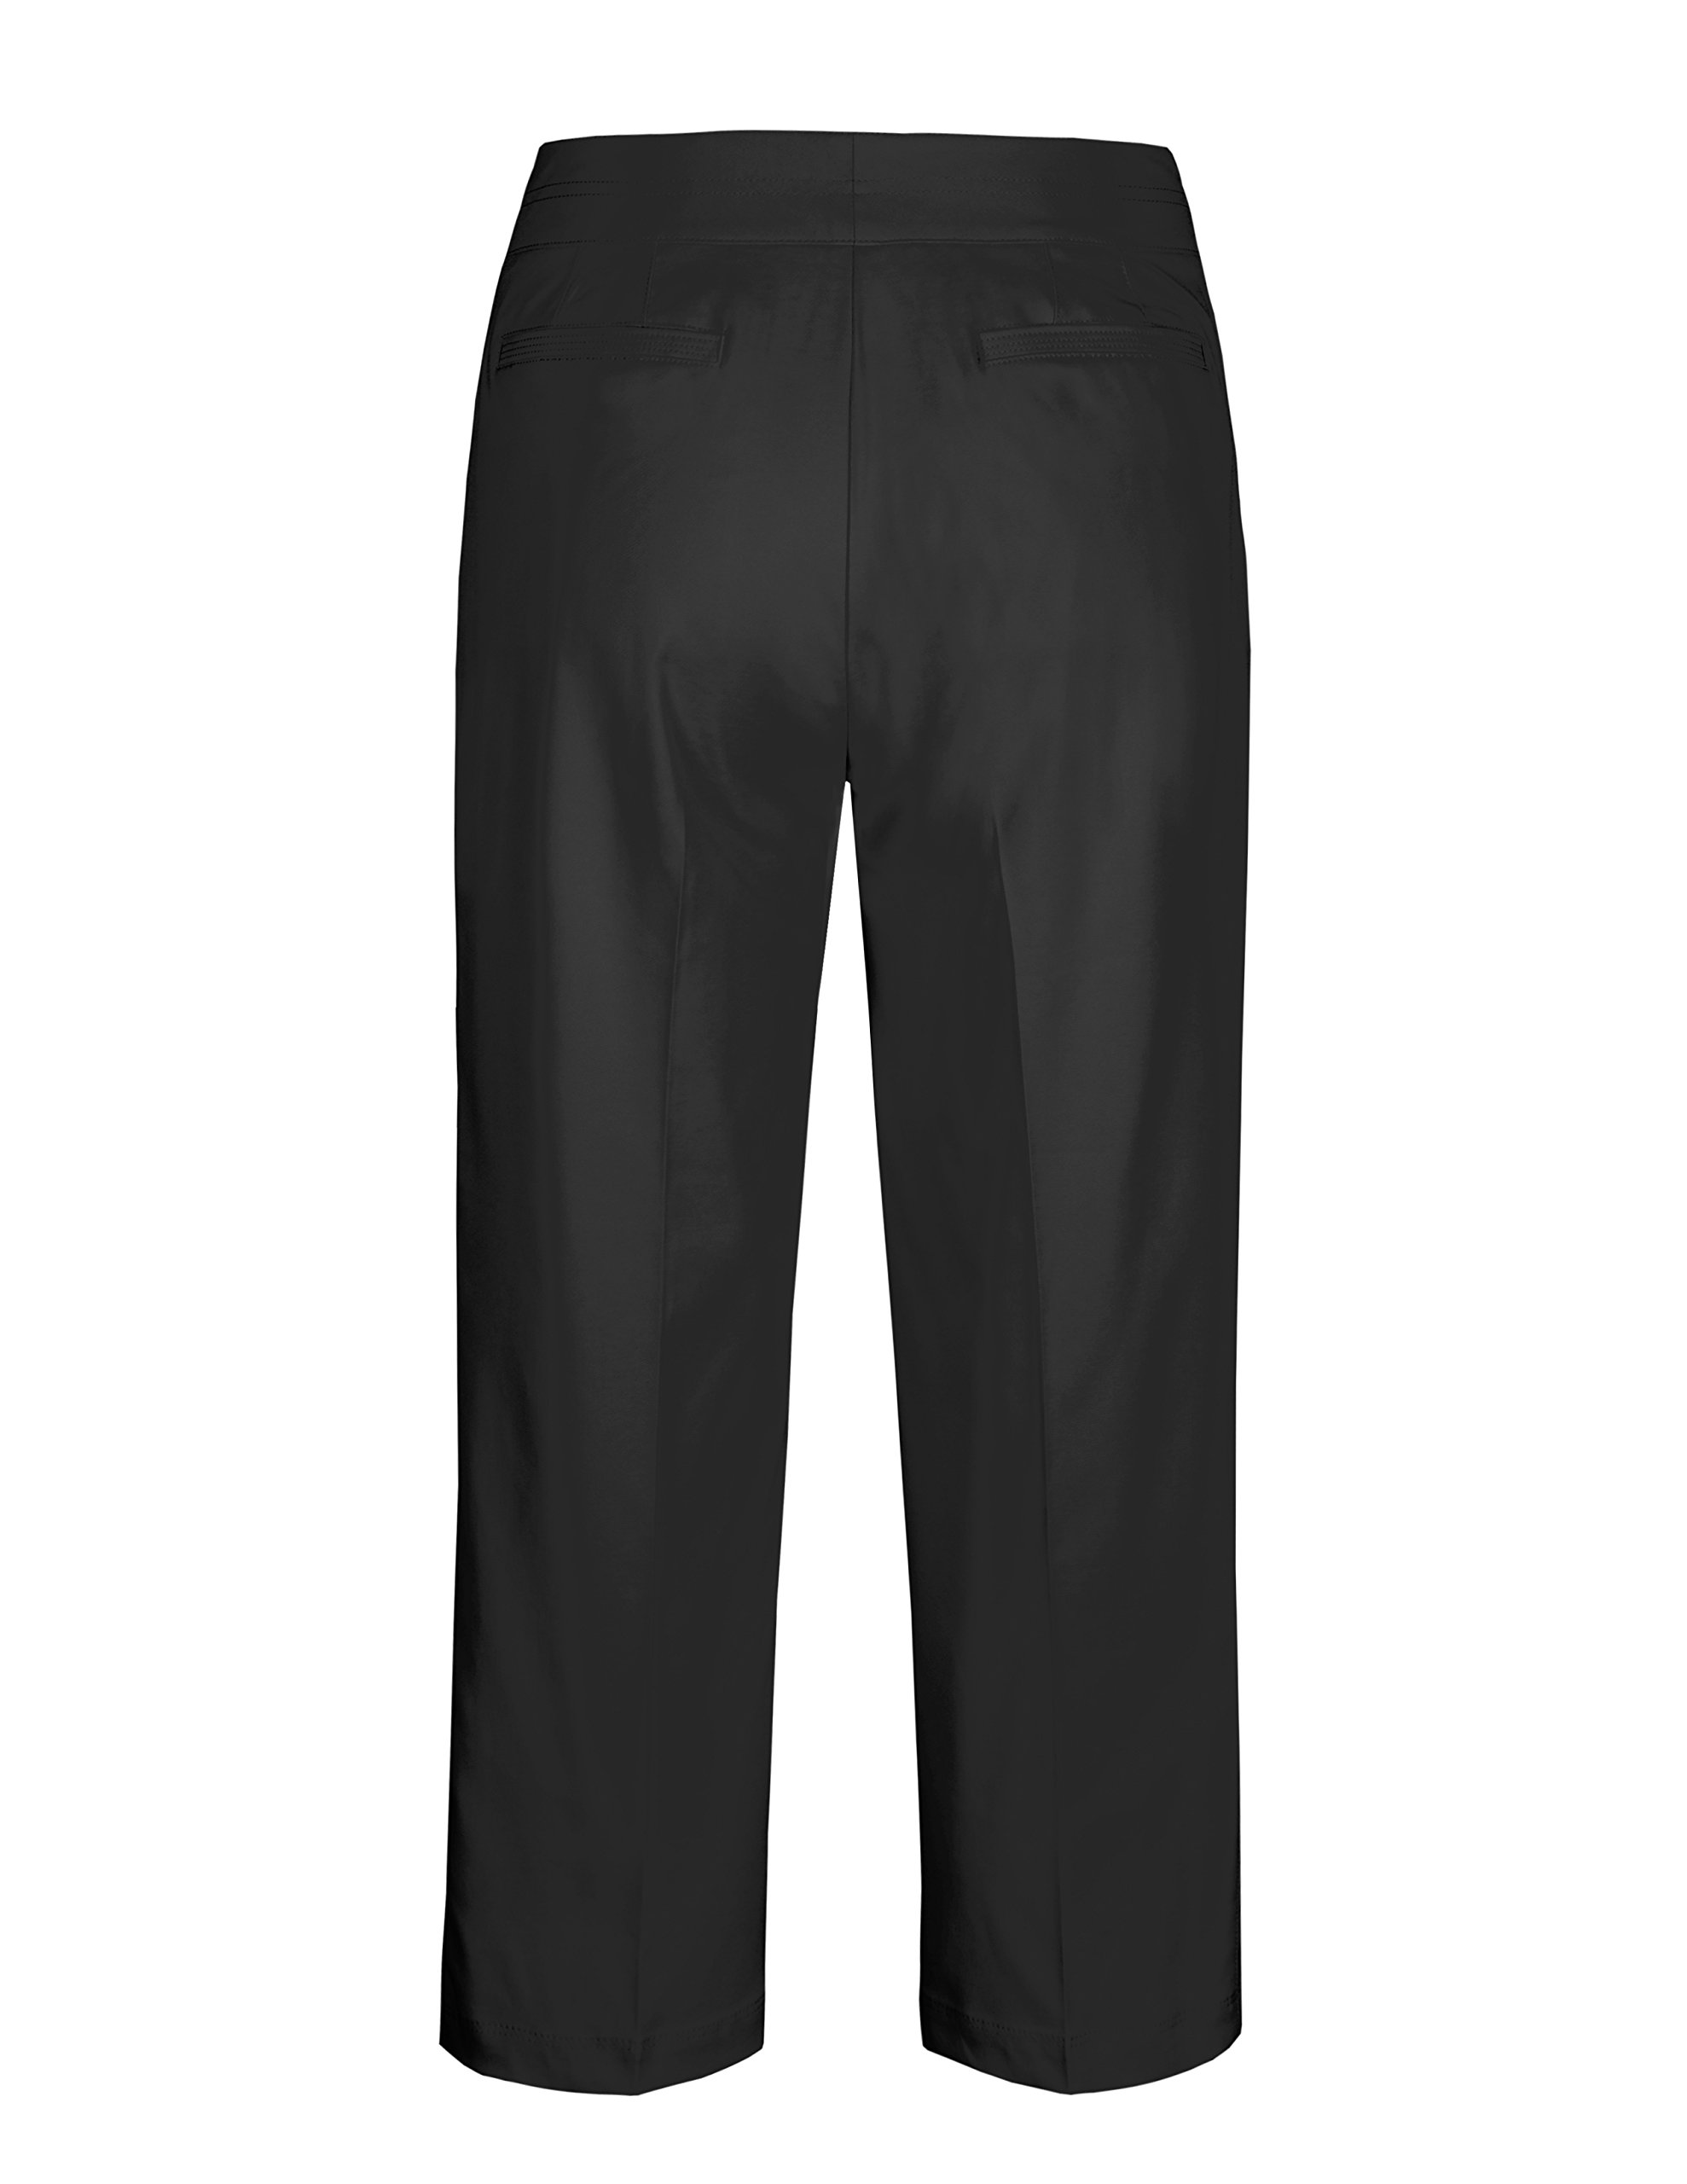 Tail Activewear Women's Classic Capri 6 Black by Tail (Image #4)